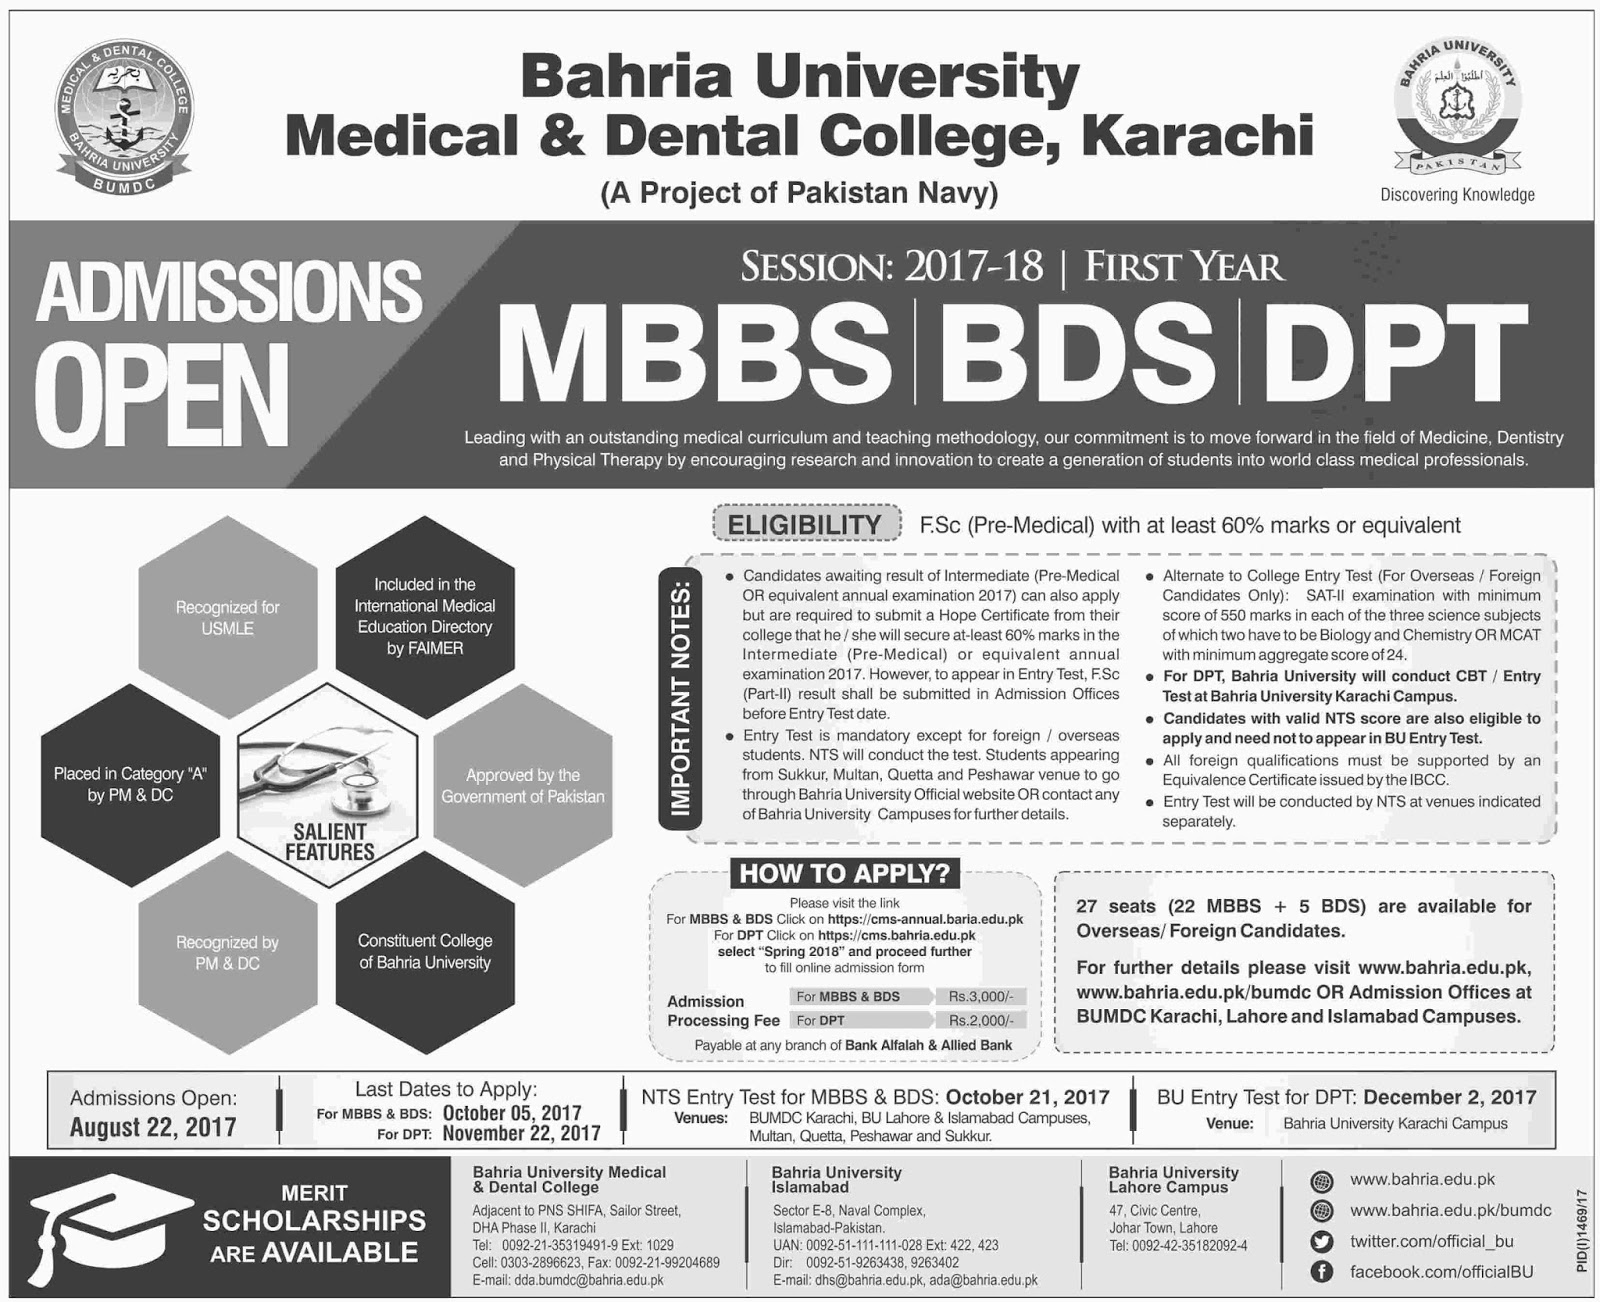 Admissions Open in Bahria University Medical and Dental College Karachi - 2017